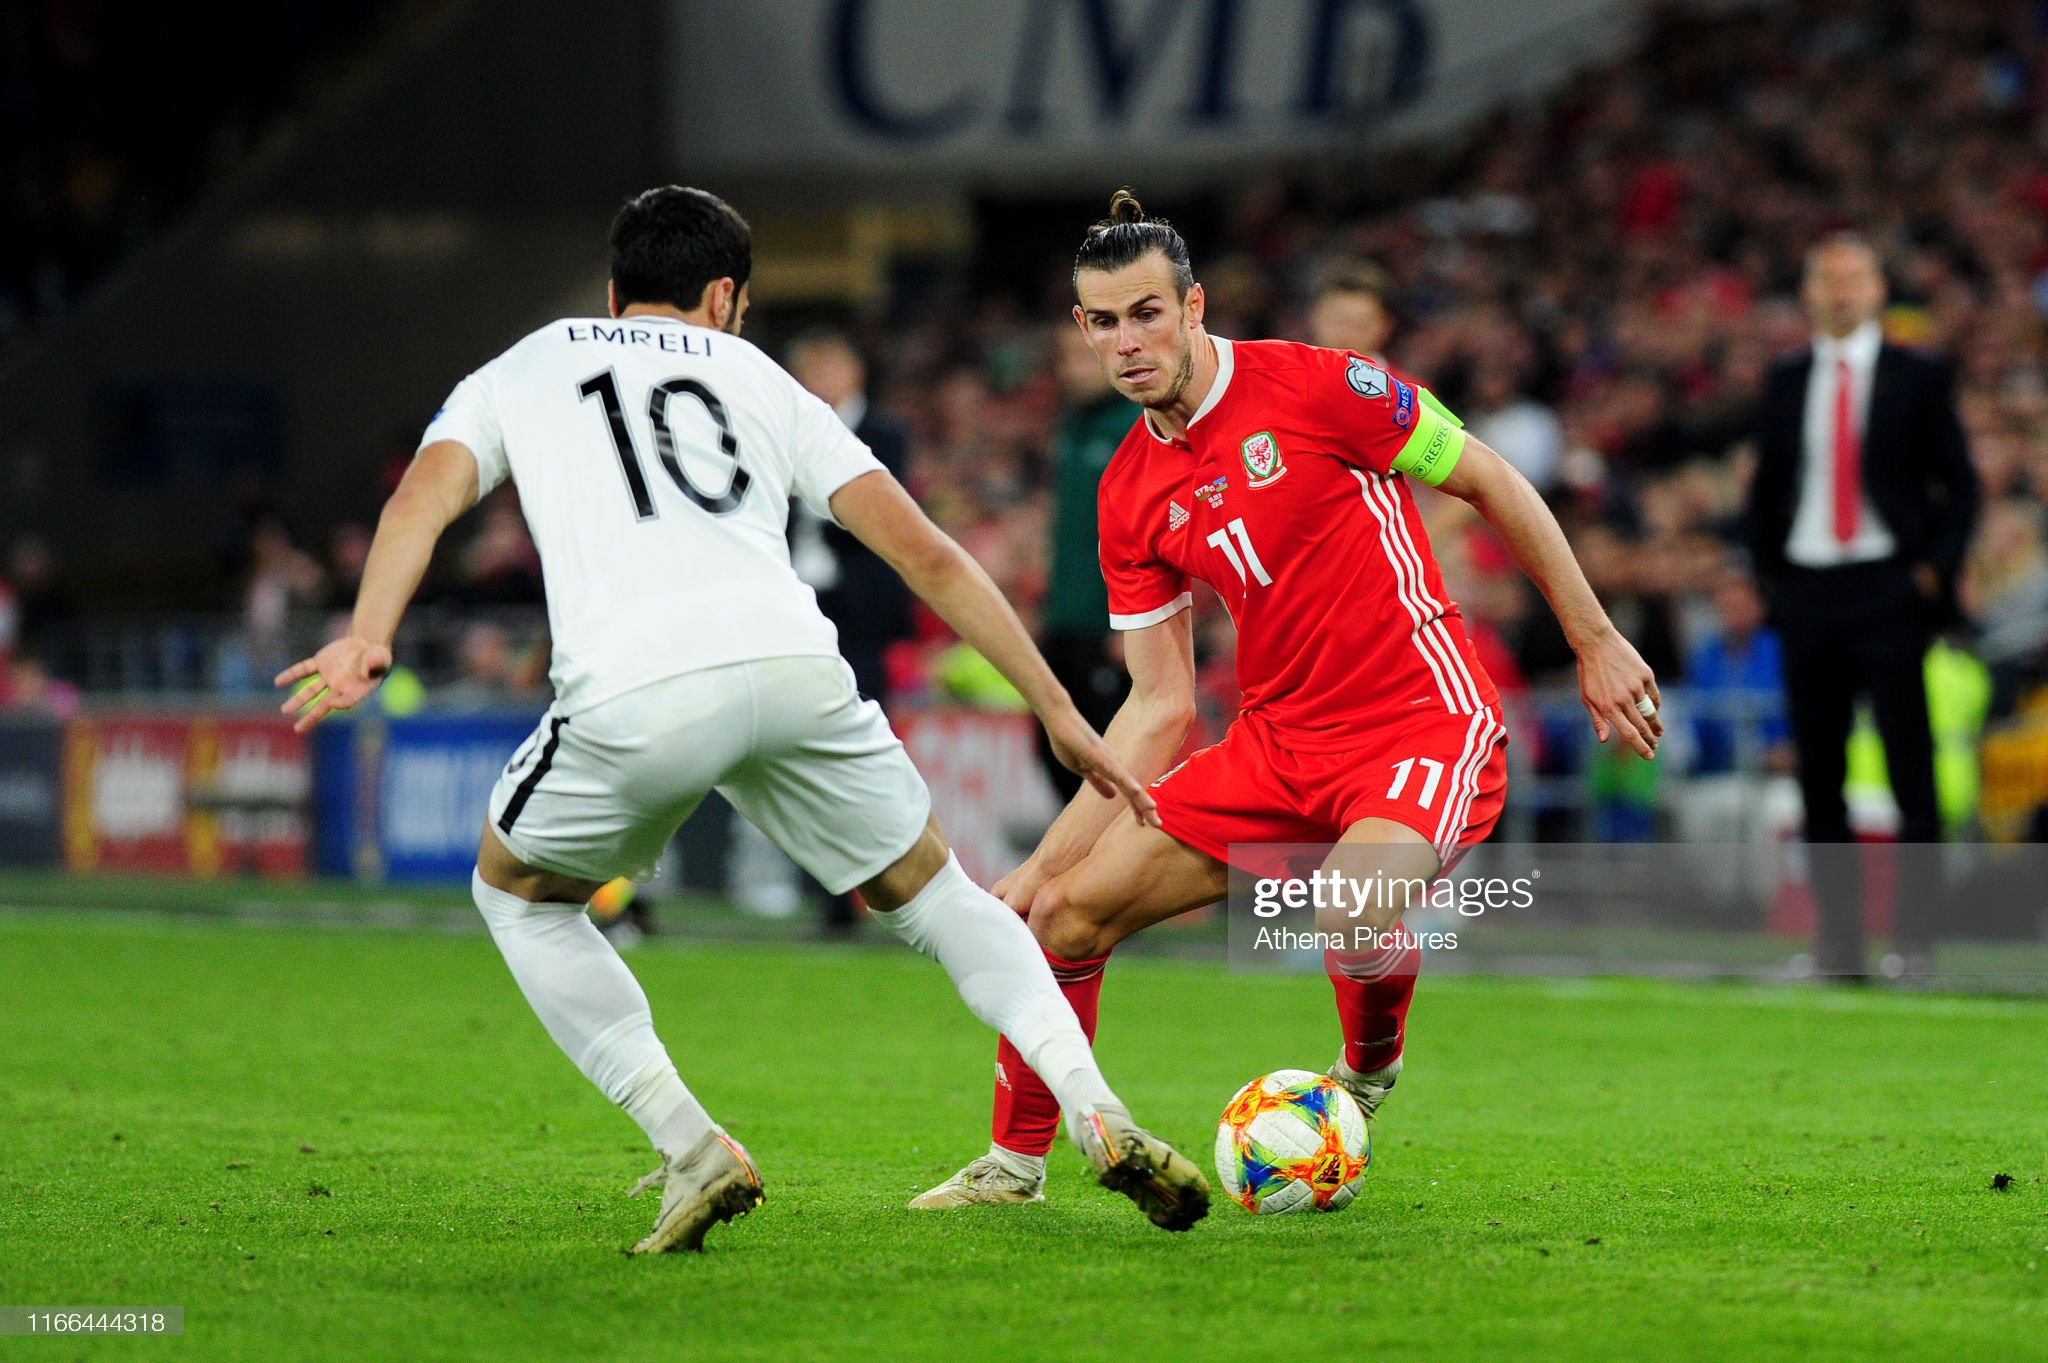 Azerbaijan v Wales preview, prediction and odds